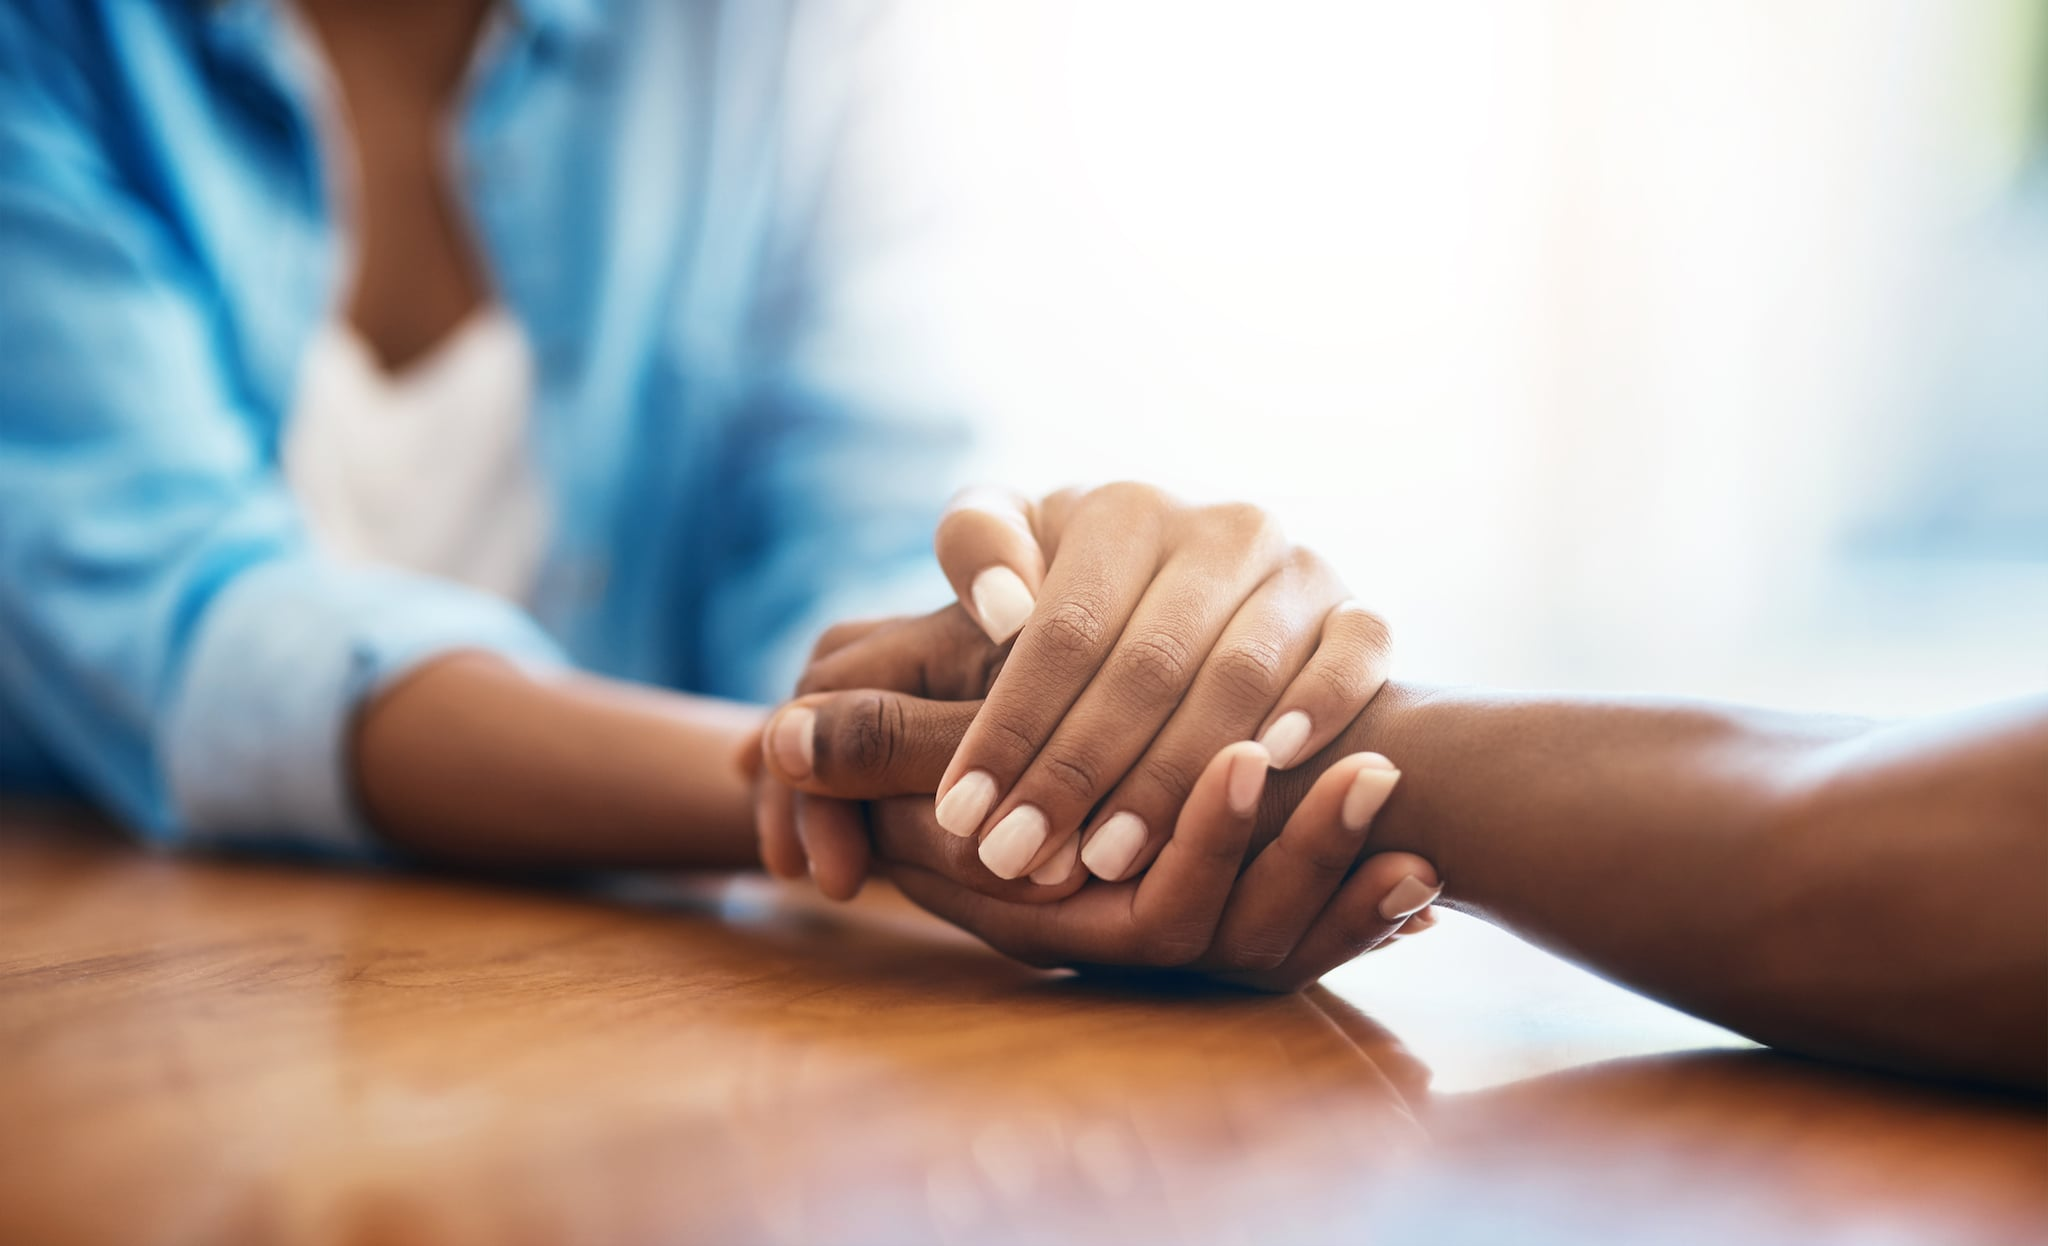 Closeup shot of two unrecognisable people holding hands in comfort at home